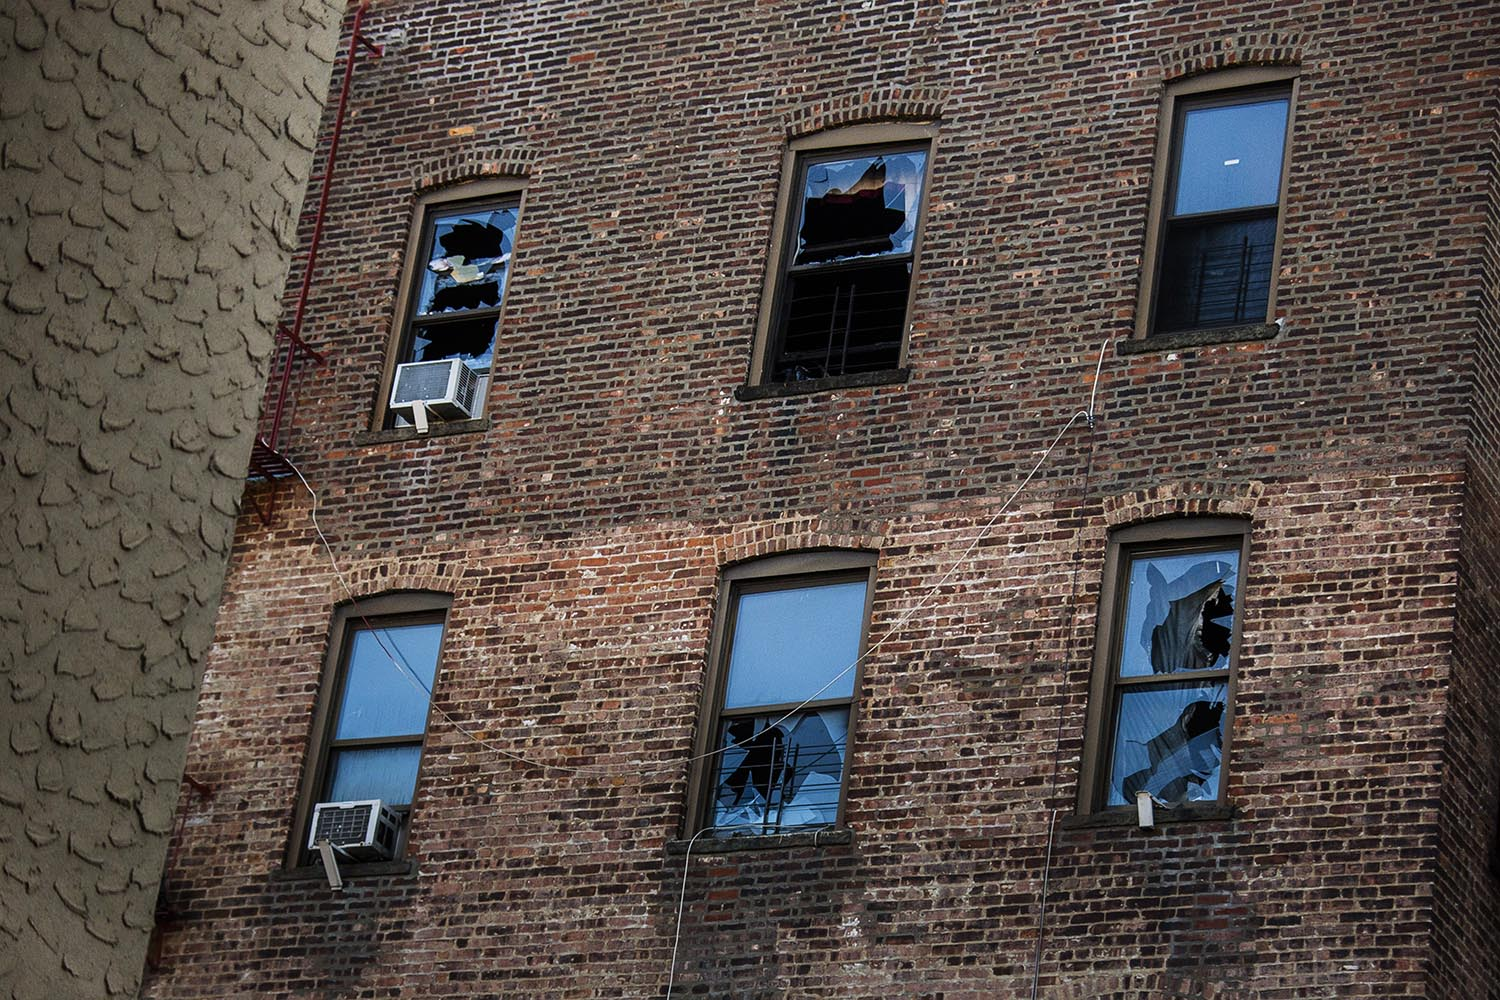 """<div class=""""meta image-caption""""><div class=""""origin-logo origin-image ap""""><span>AP</span></div><span class=""""caption-text"""">This Friday, Dec. 29, 2017, photo shows broken windows on the back of the building where more than 10 people died Thursday in a fire in the Bronx borough of New York. (AP Photo/Andres Kudacki)</span></div>"""